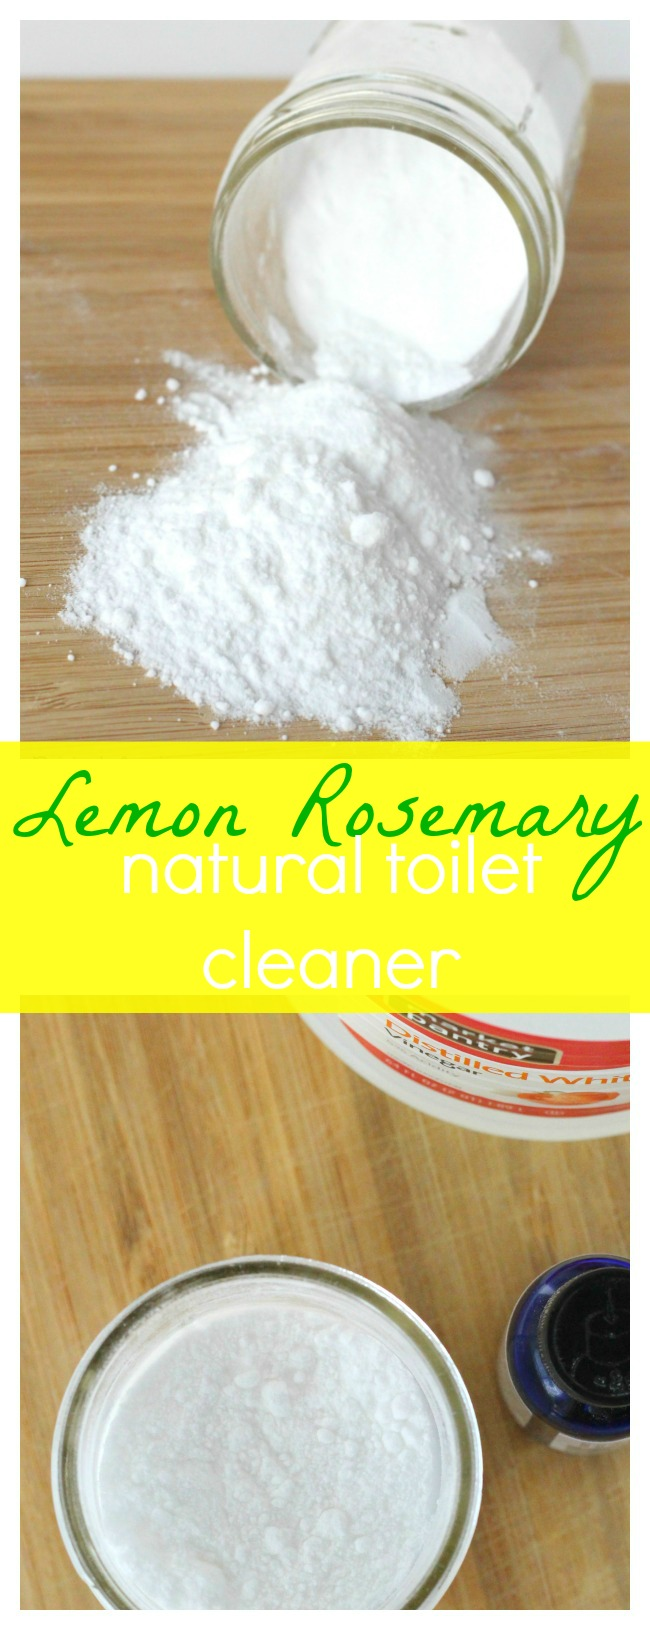 lemon natural toilet cleaner